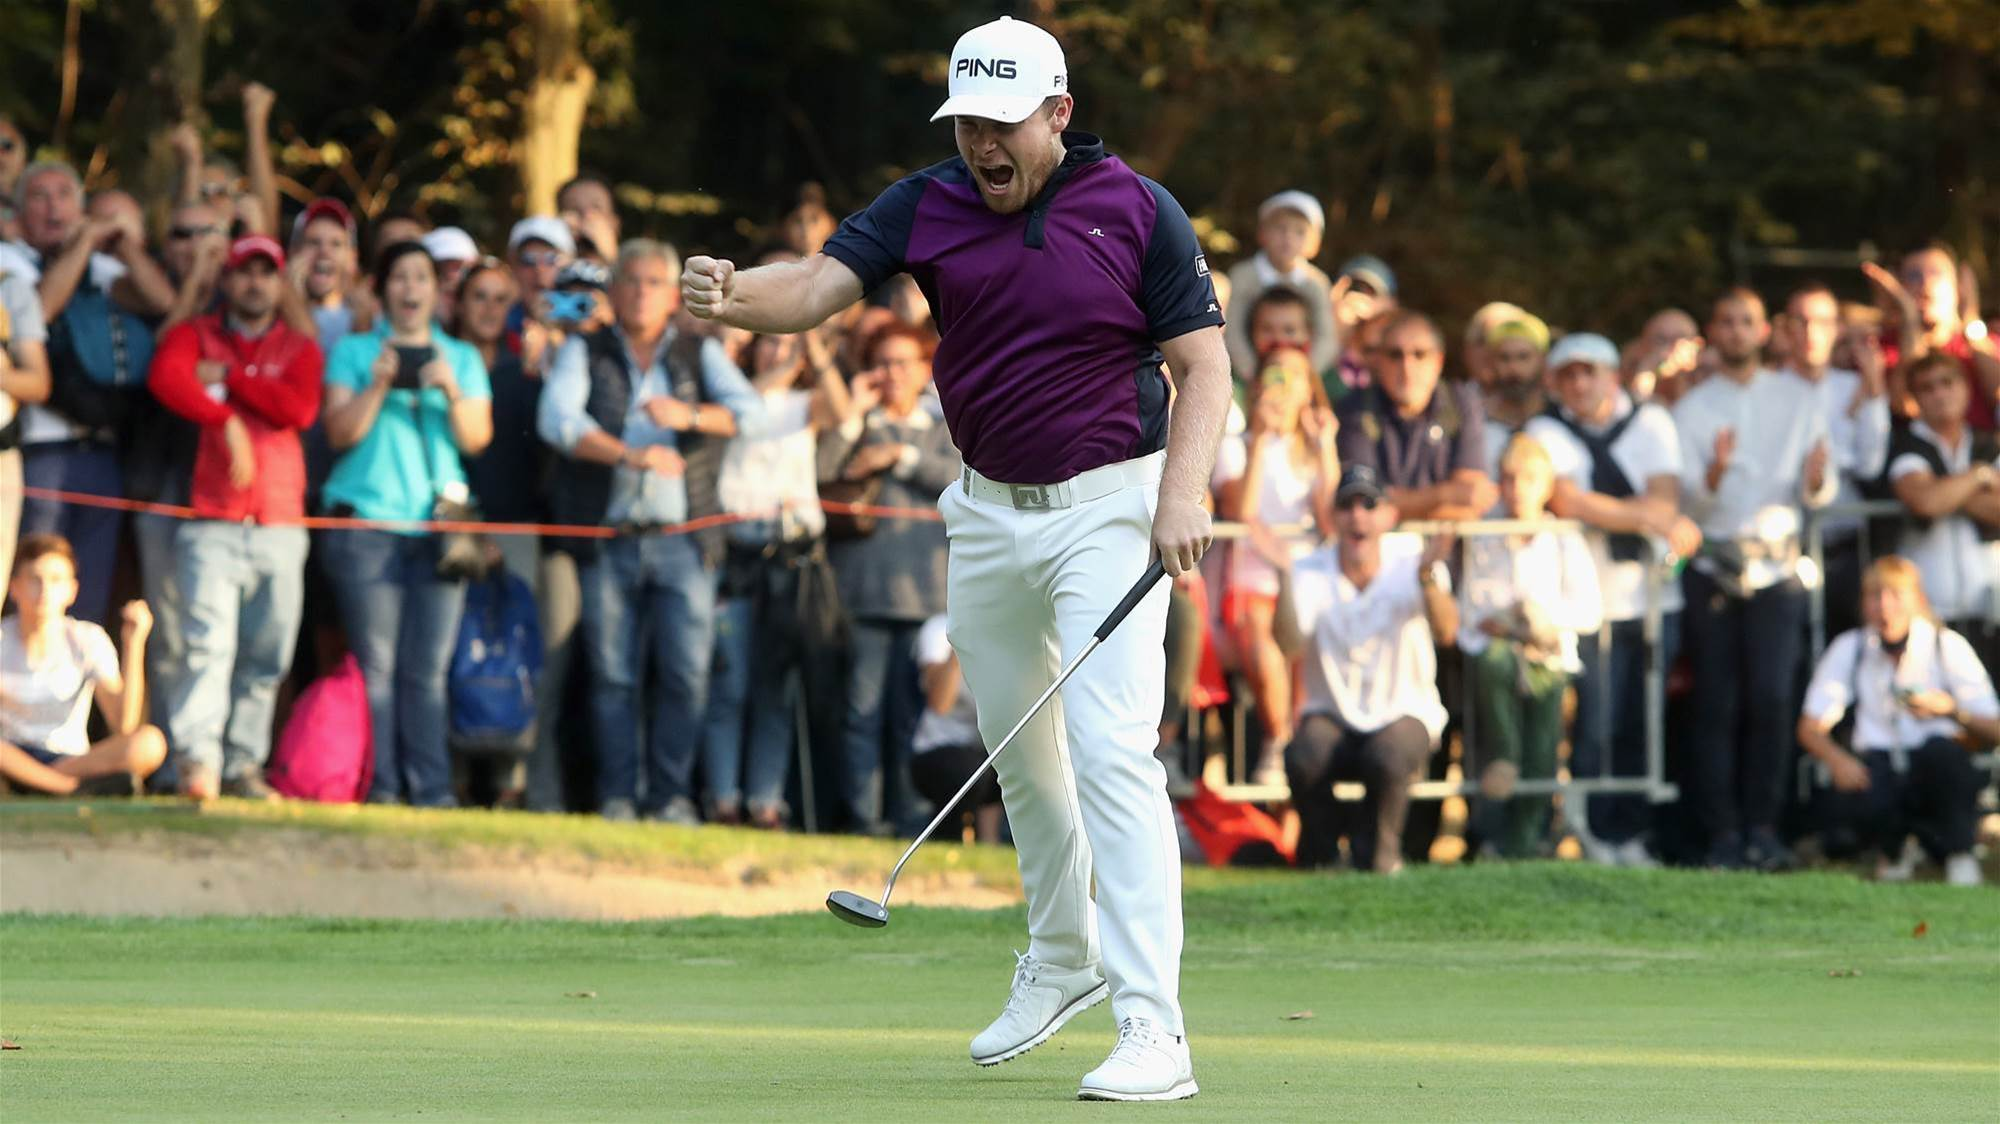 EURO TOUR: Hatton continues his winning ways